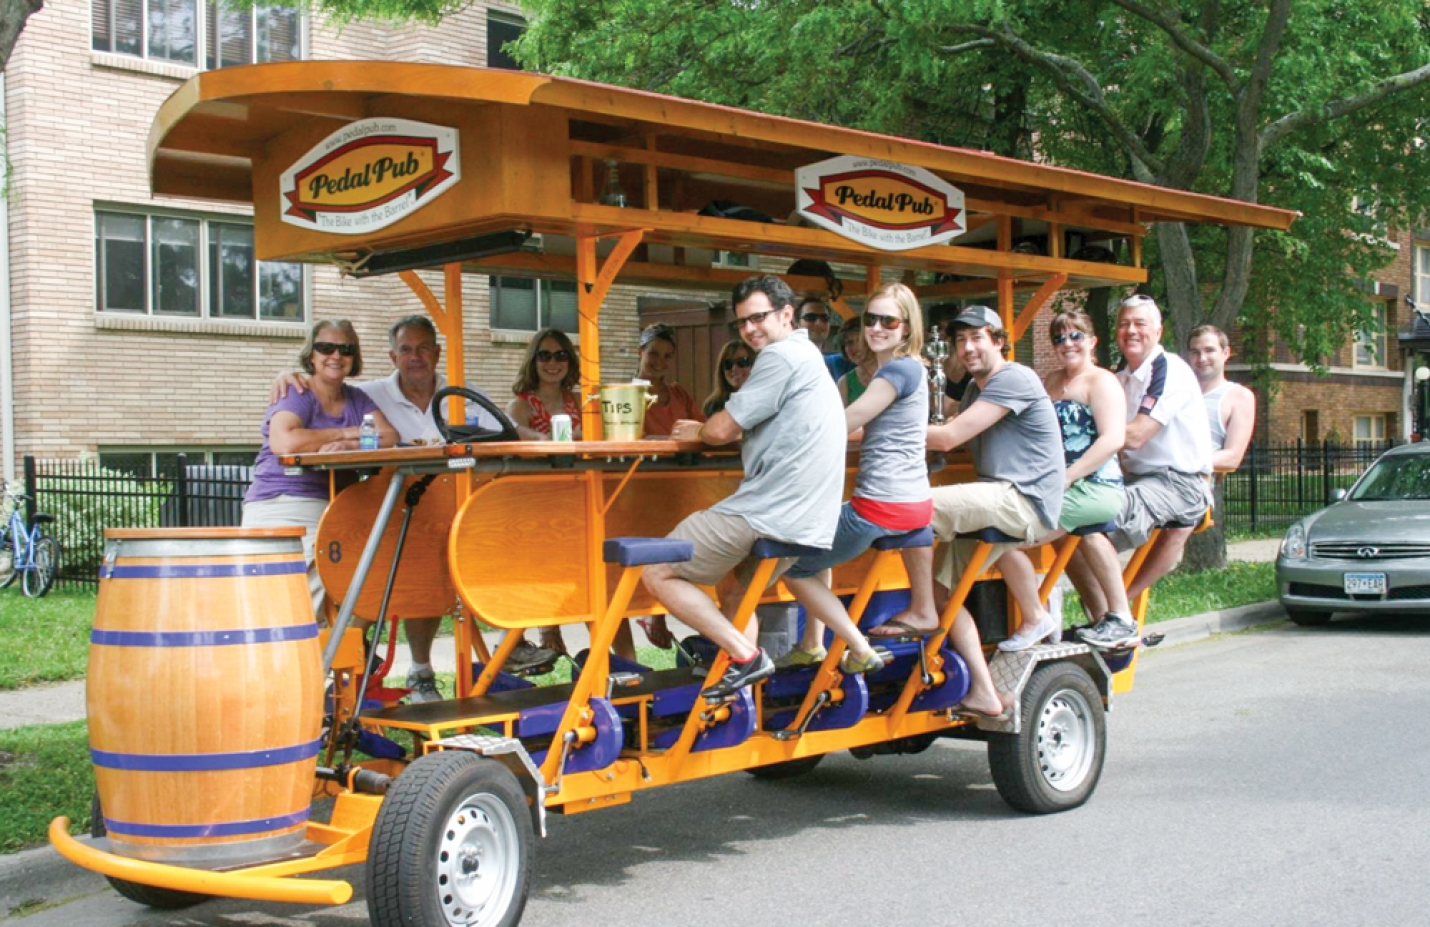 Council To Consider Allowing Trolley-style Pedal Powered Pub Tours